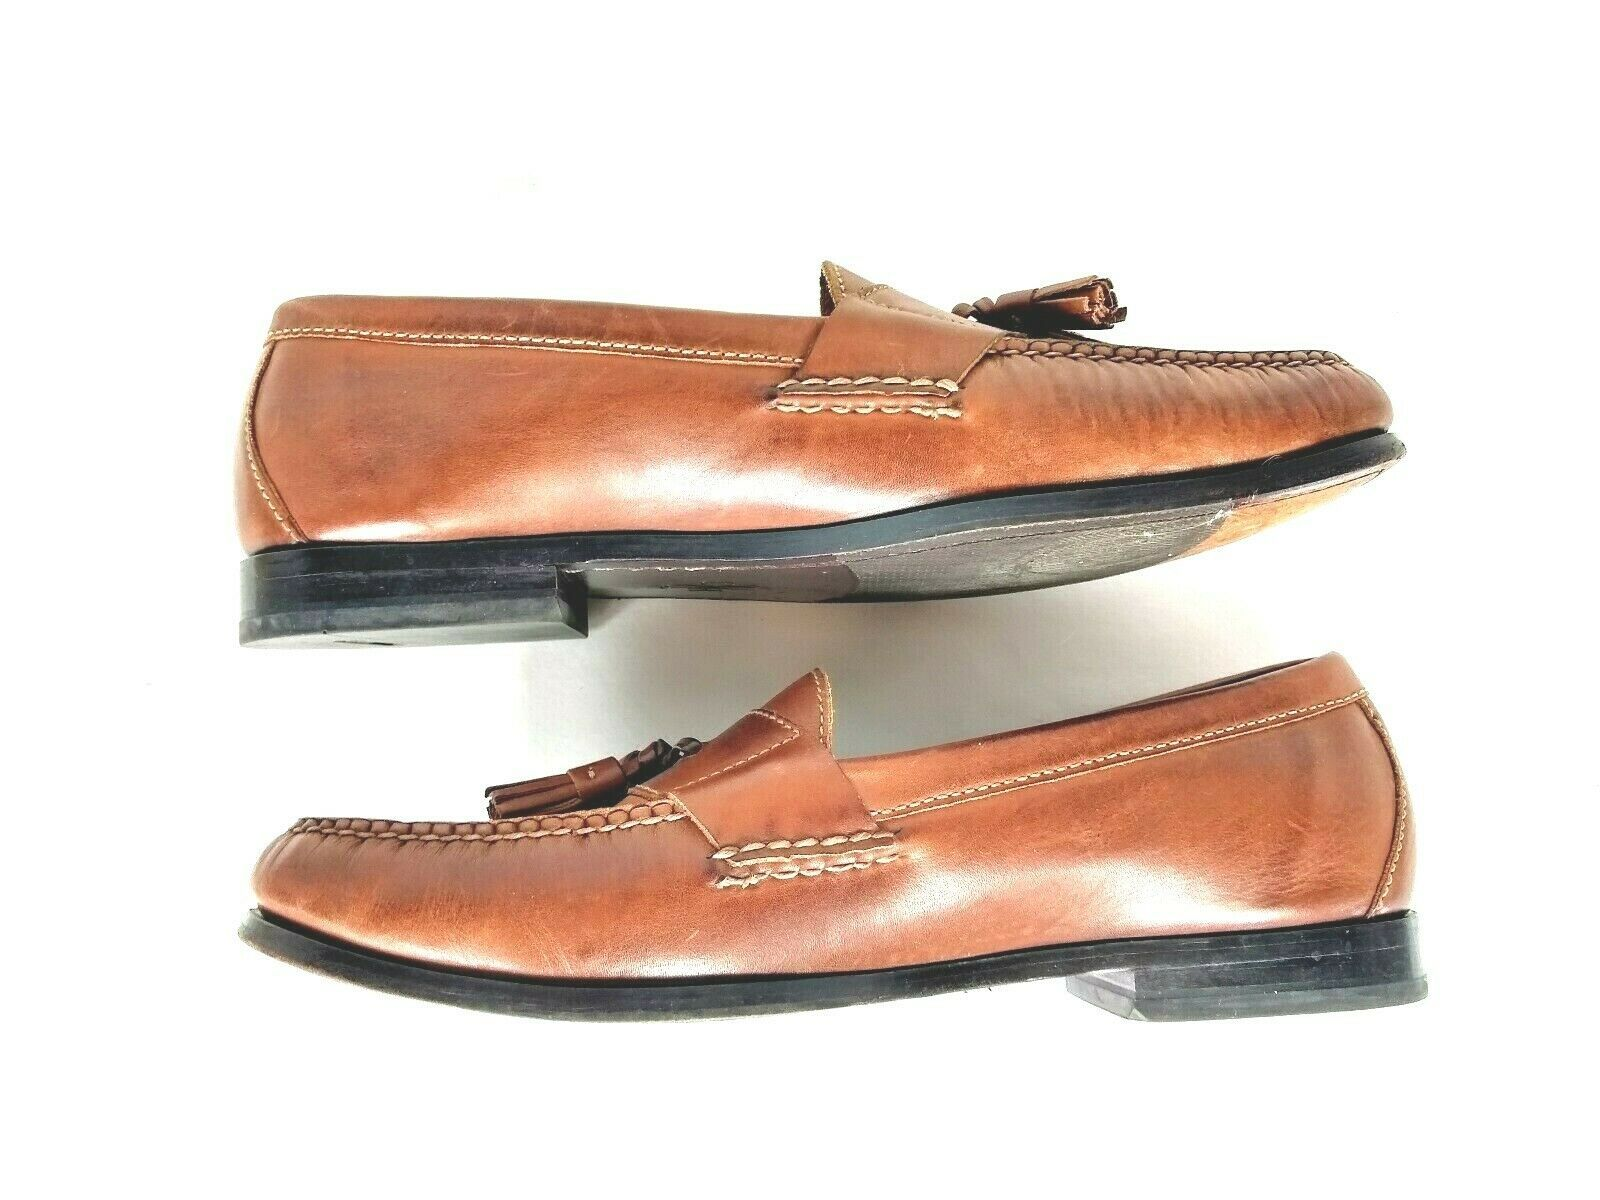 Cole Haan Men's Brown Leather Slip On Dress Pinch Tassel Loafer Sze 12 Air Sole  image 2